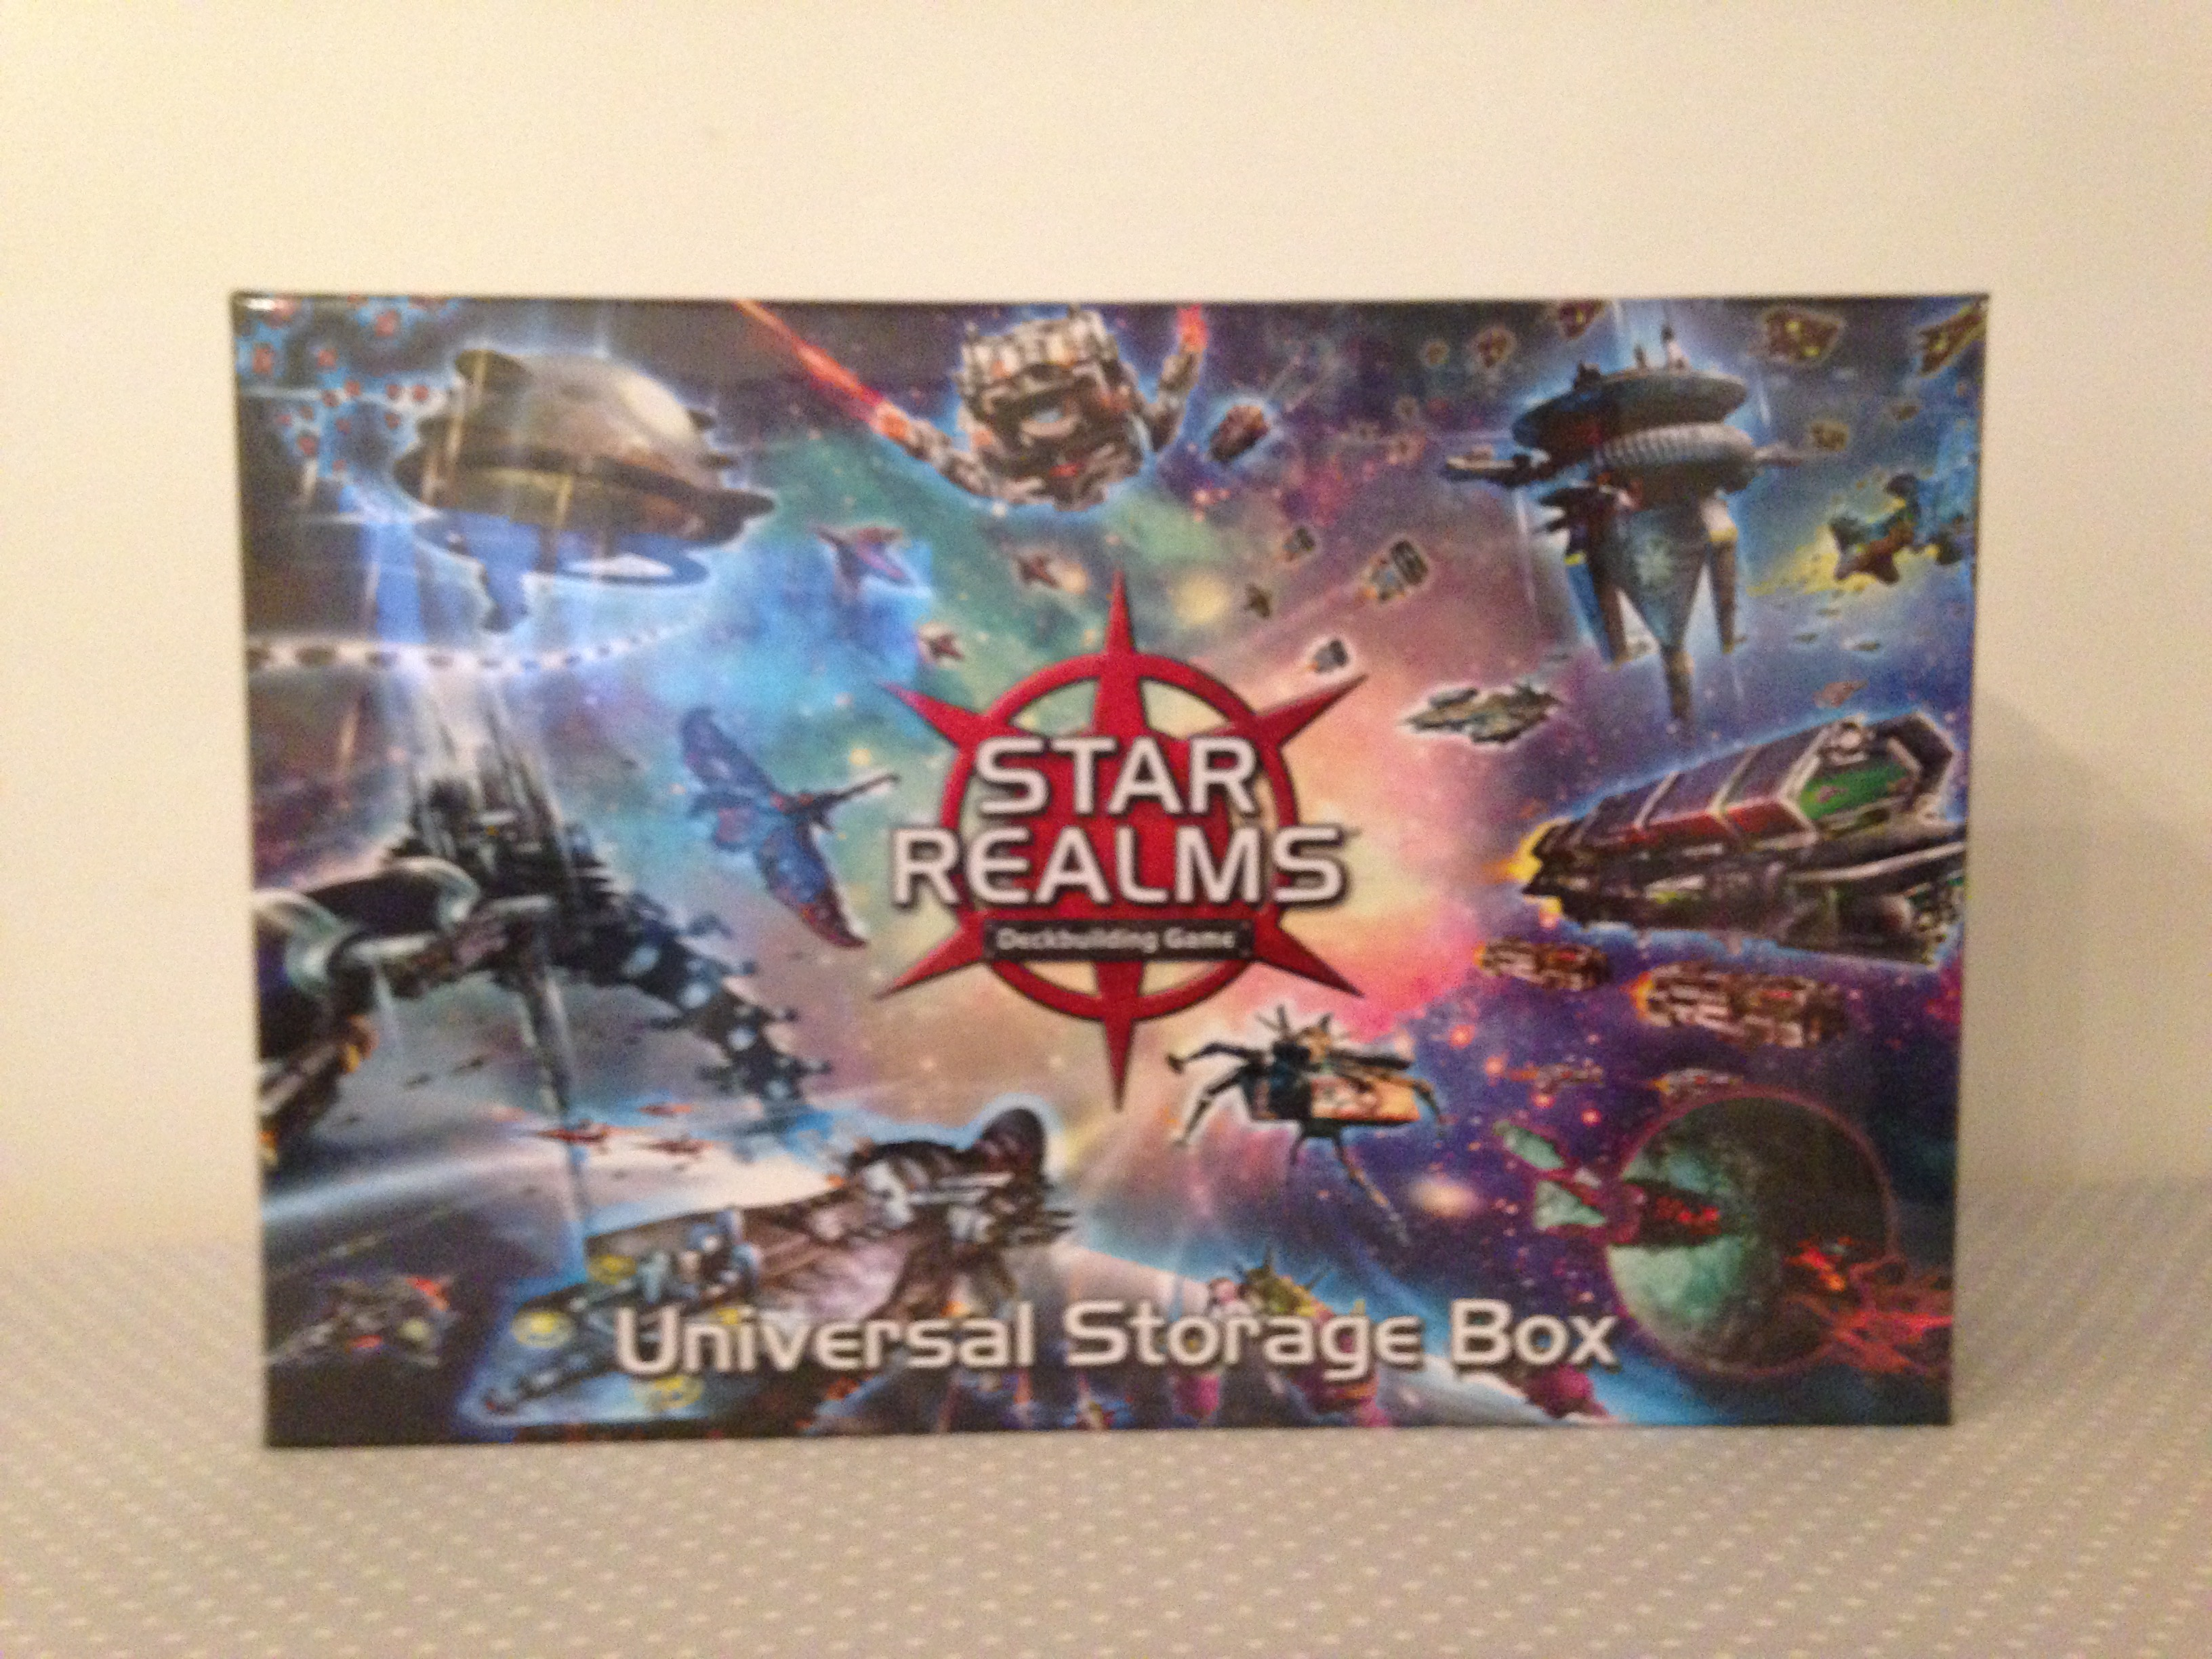 Star Realms - Universal Storage Box kickstarter 2018